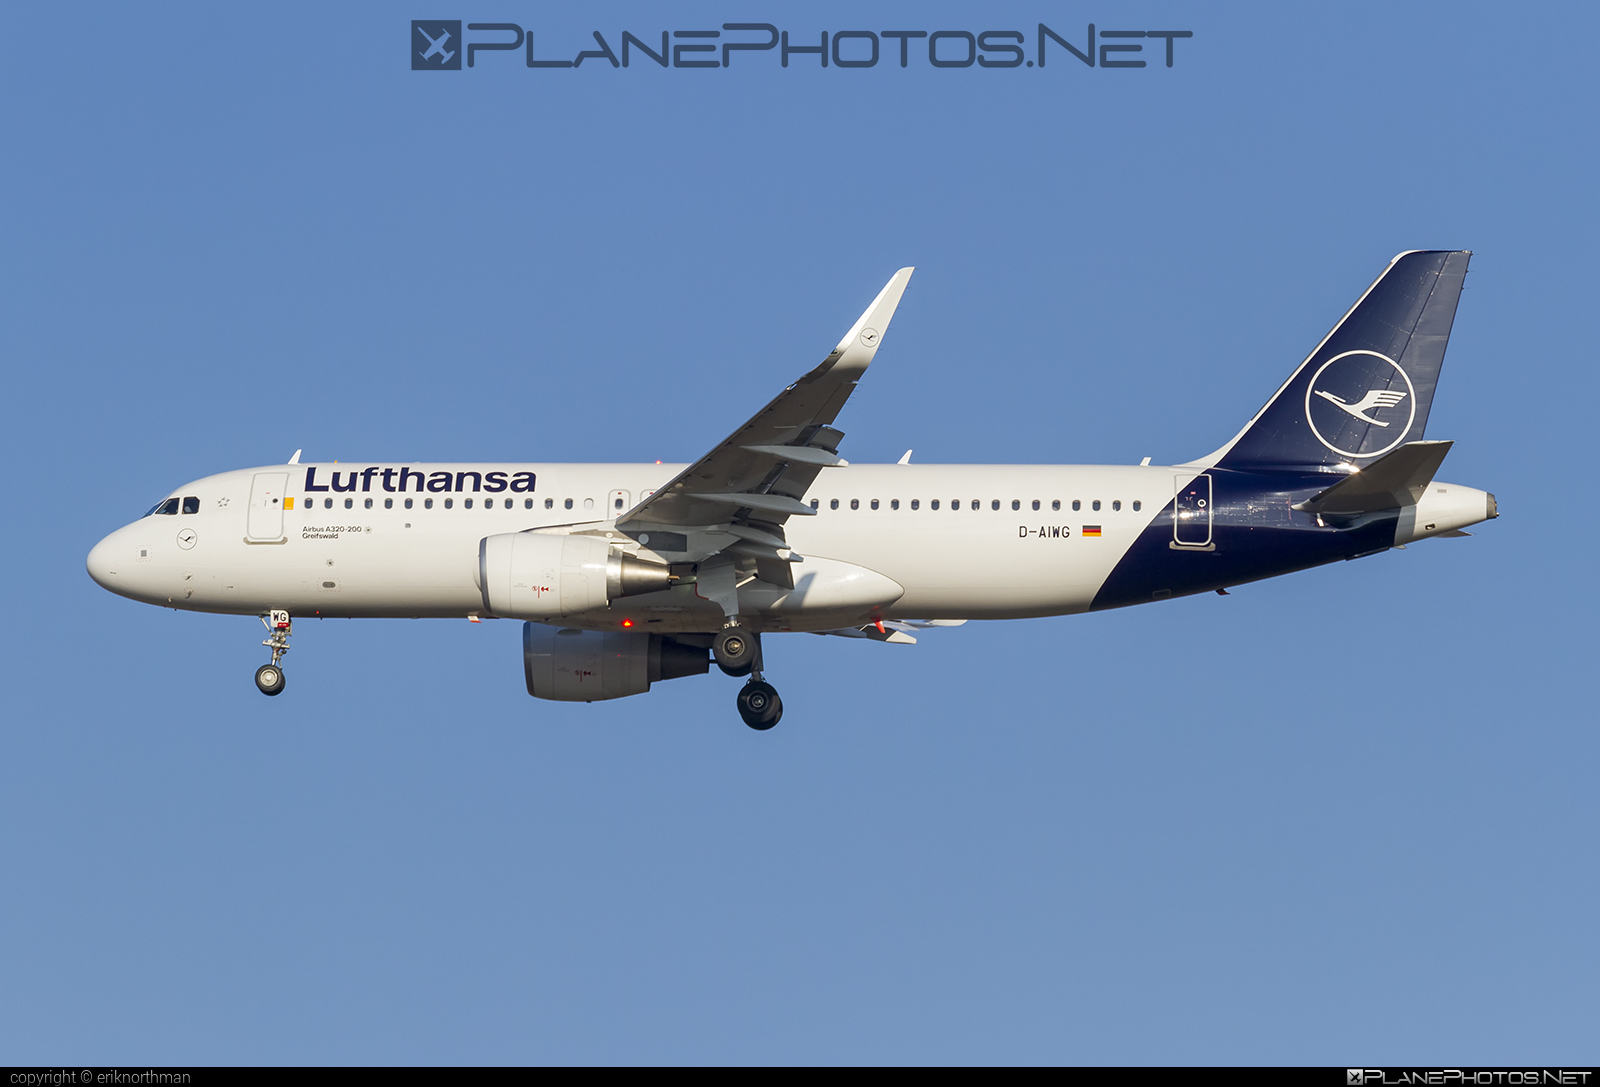 Airbus A320-214 - D-AIWG operated by Lufthansa #a320 #a320family #airbus #airbus320 #lufthansa